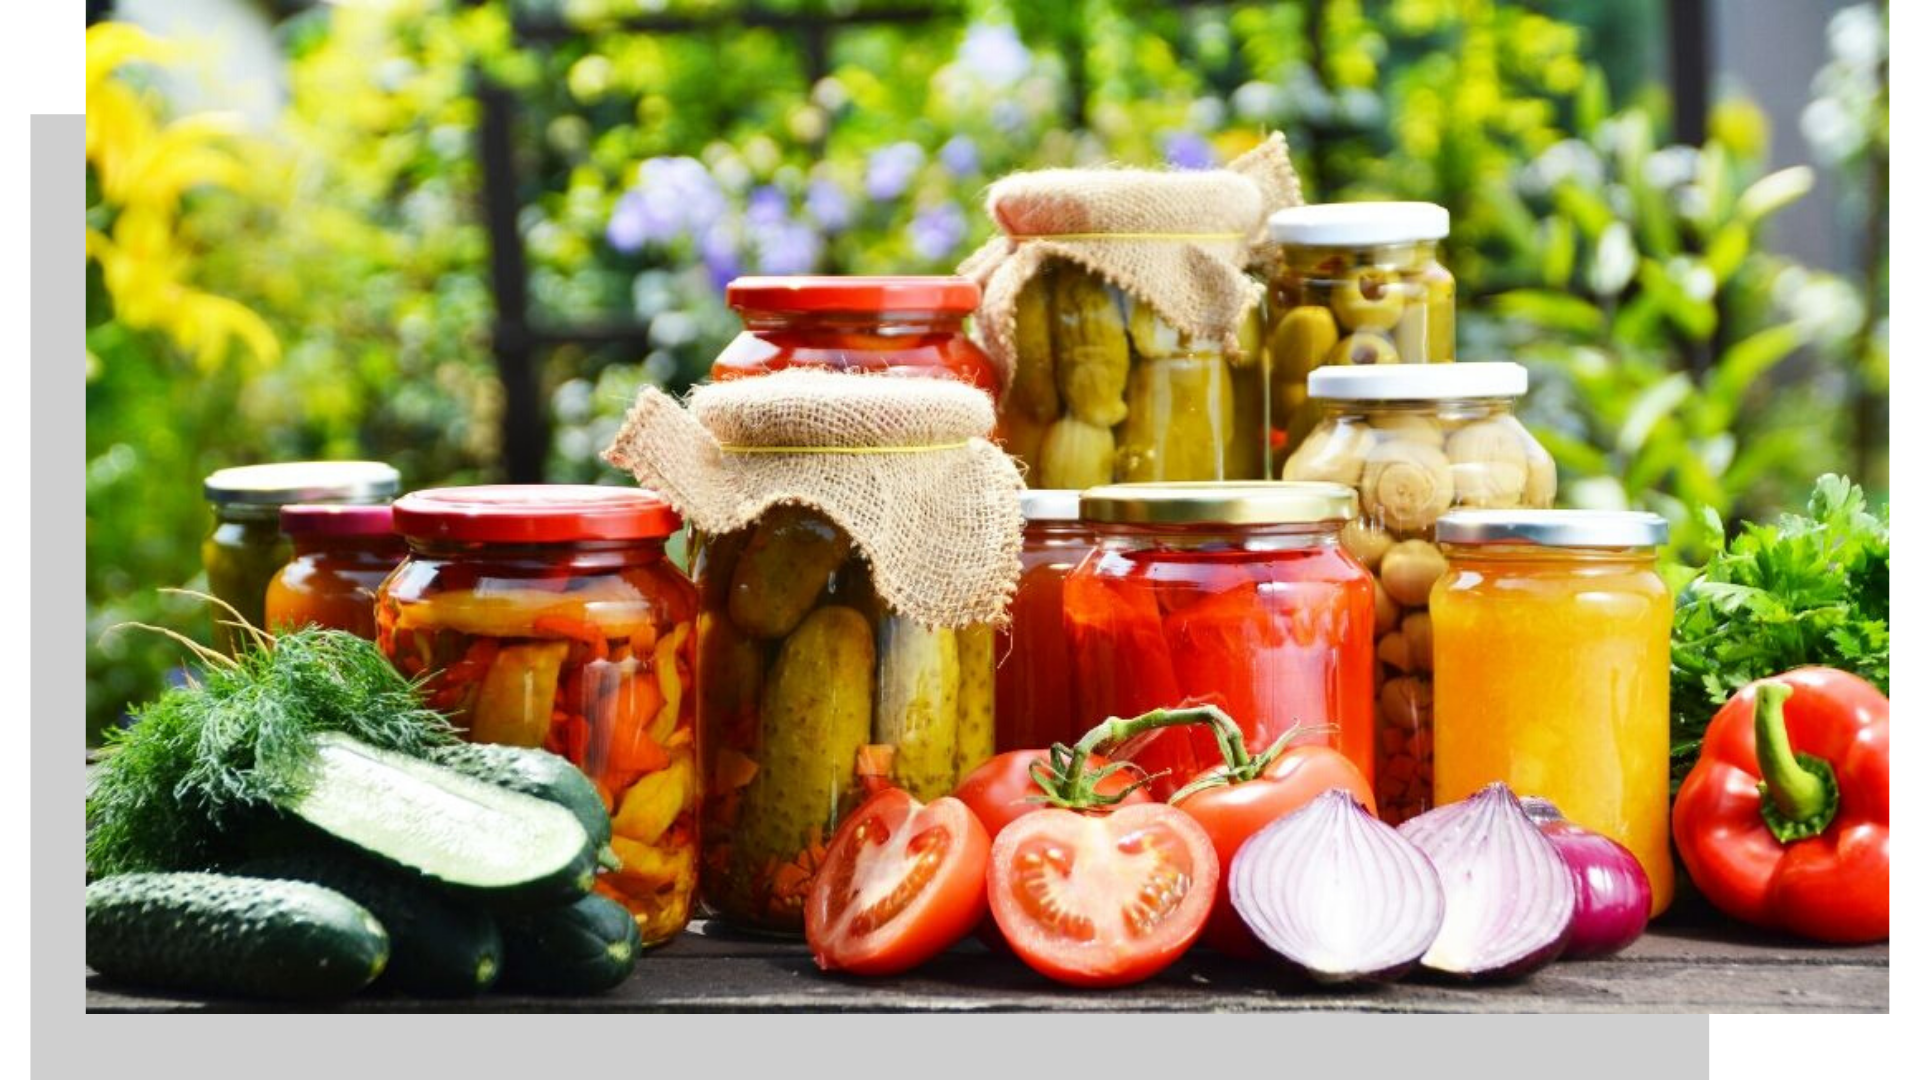 canning jars with fresh produce